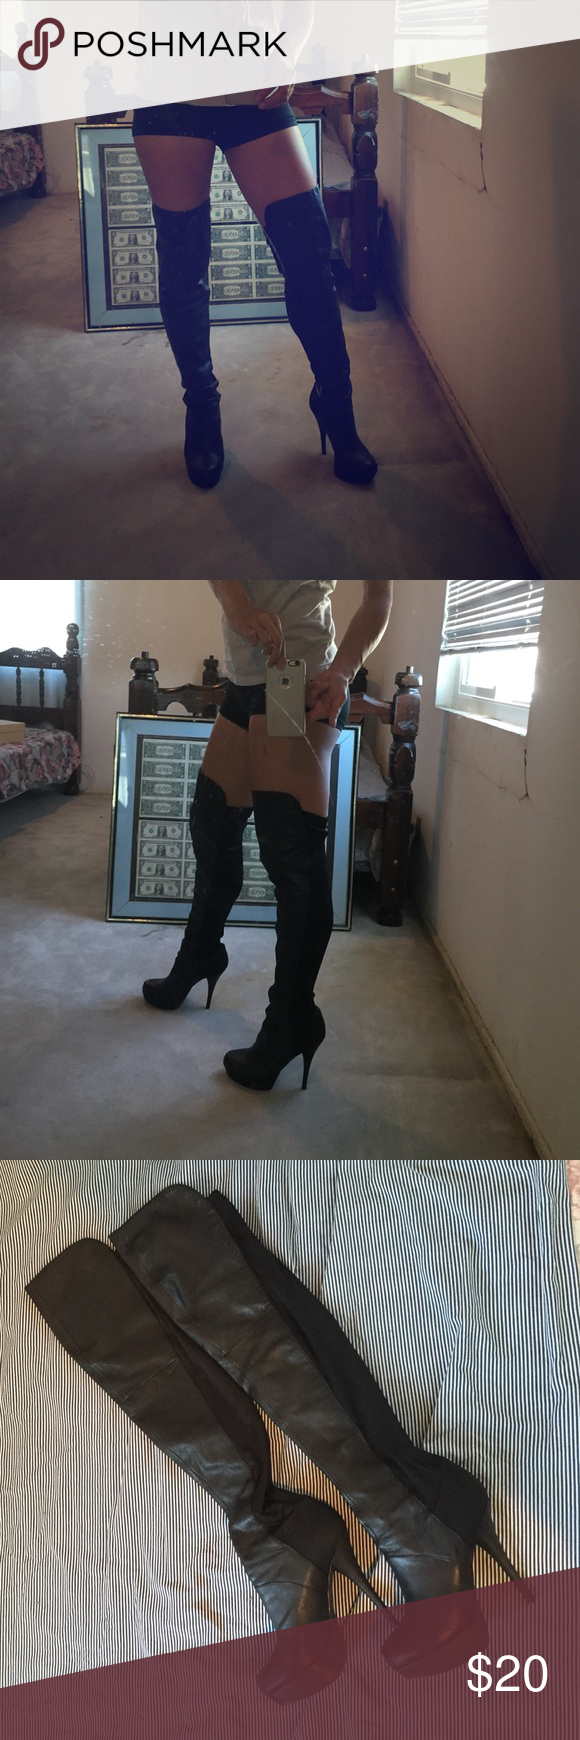 Steve Madden leather OTK over knee boot SZ 8 Black OTK (over the knee) leather boots about 6 inches high with front platform. These boots slide on and off very easily because of the fabric on the calf part. I wore them no more than 5 times.. in great condition! Steve Madden Shoes Over the Knee Boots